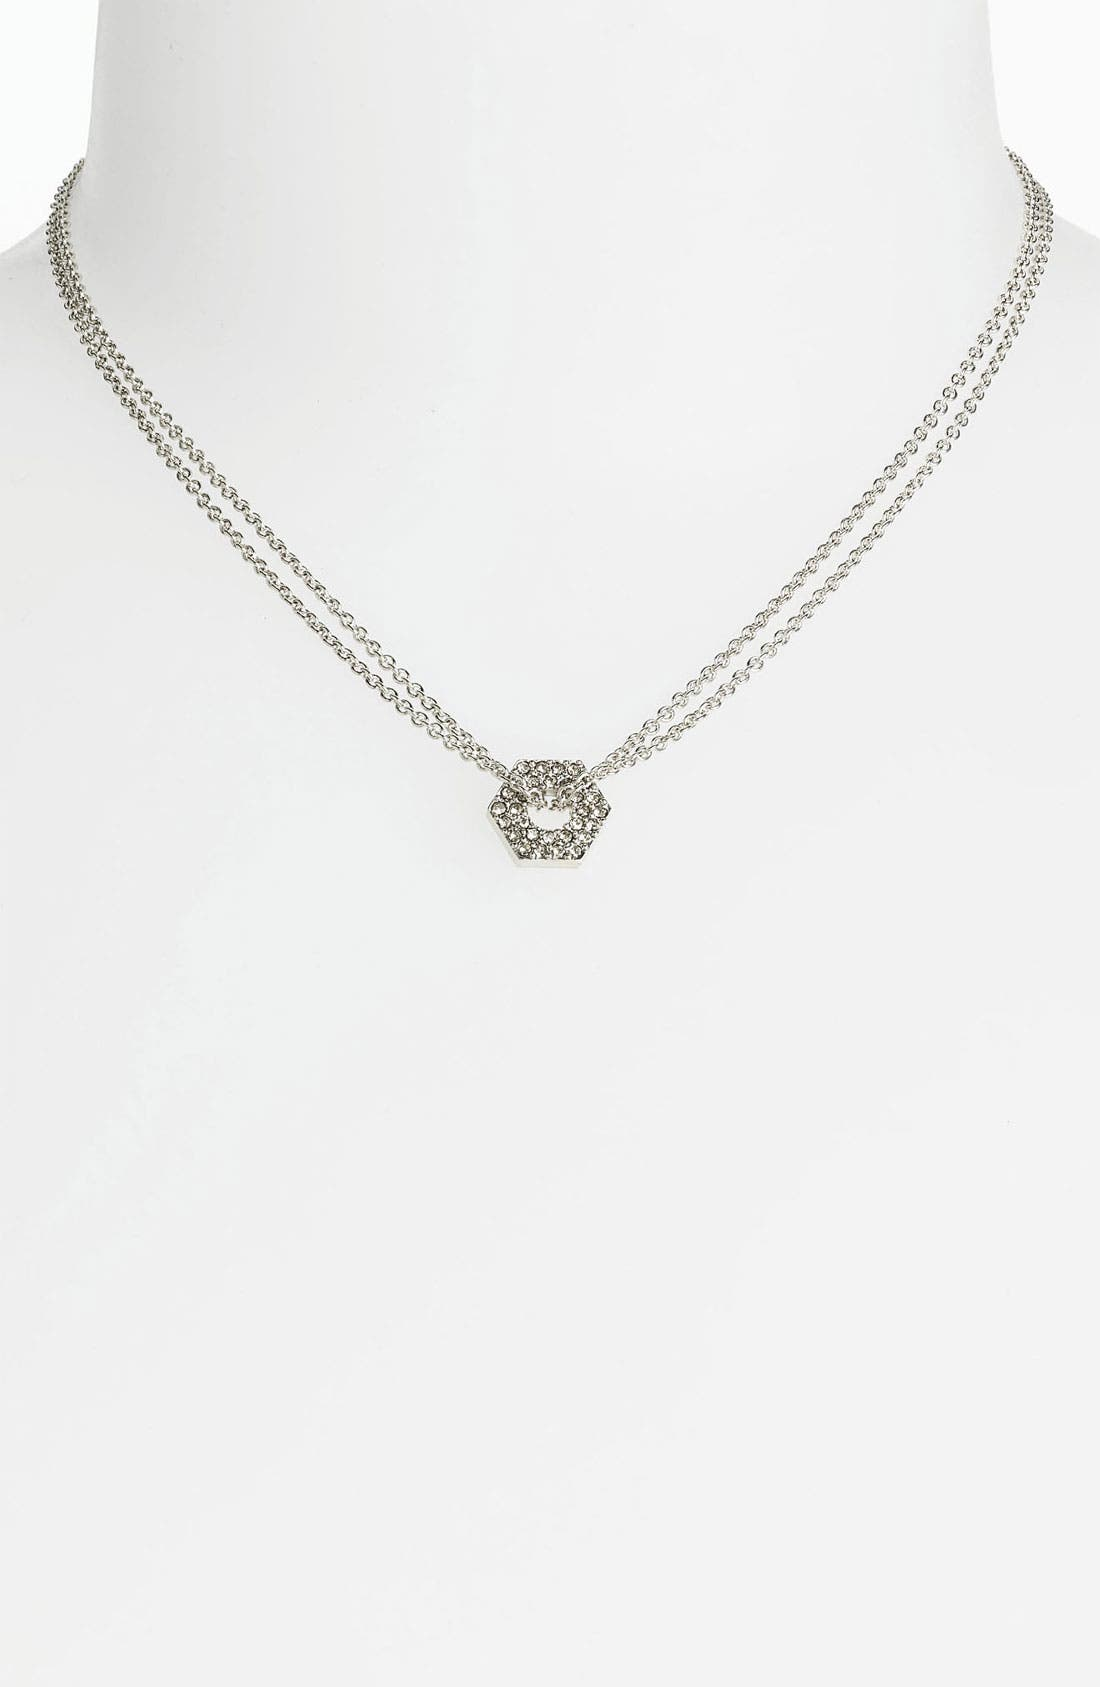 Main Image - MARC BY MARC JACOBS 'Bolts' Pavé Pendant Necklace